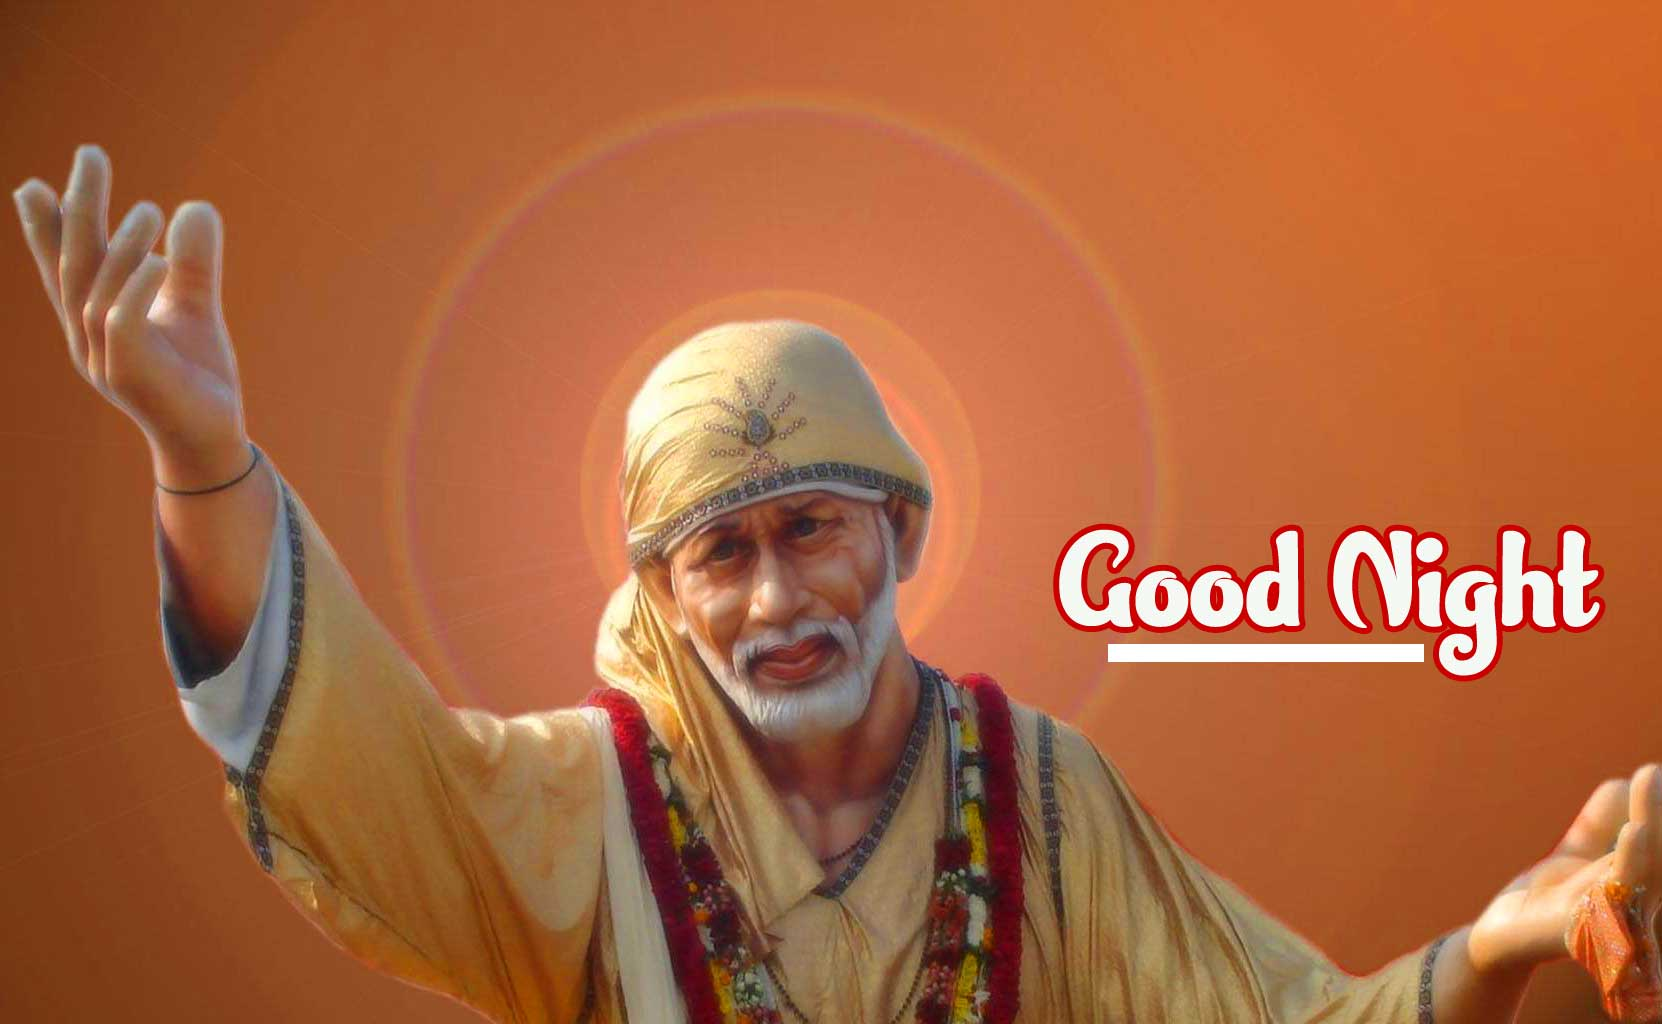 God Good Night Wishes Images 79